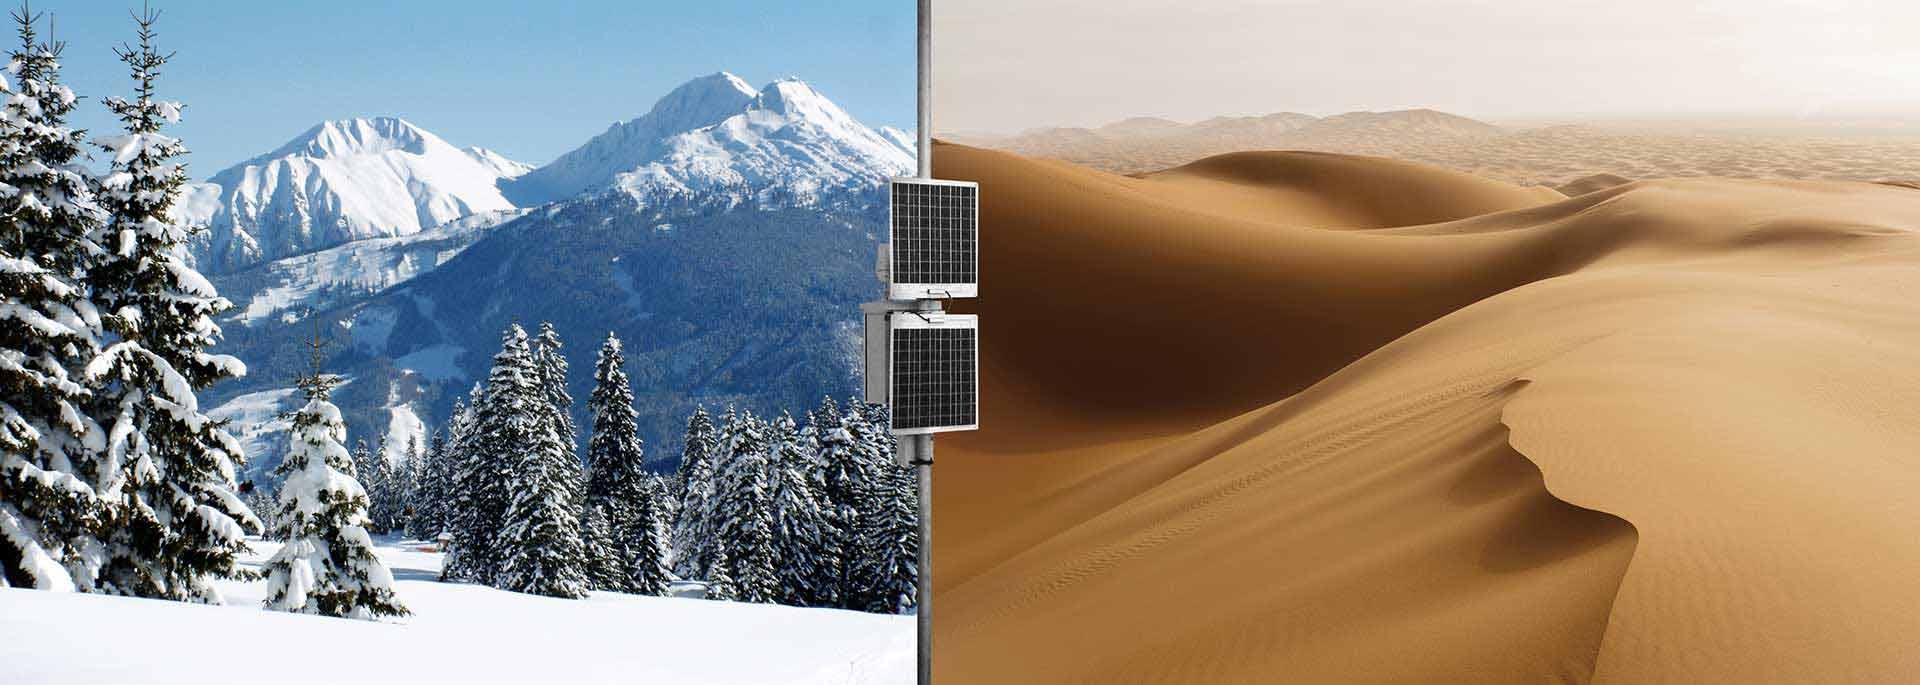 Sand dunes and alps together with Novator Solutions Remote Measurement equipment